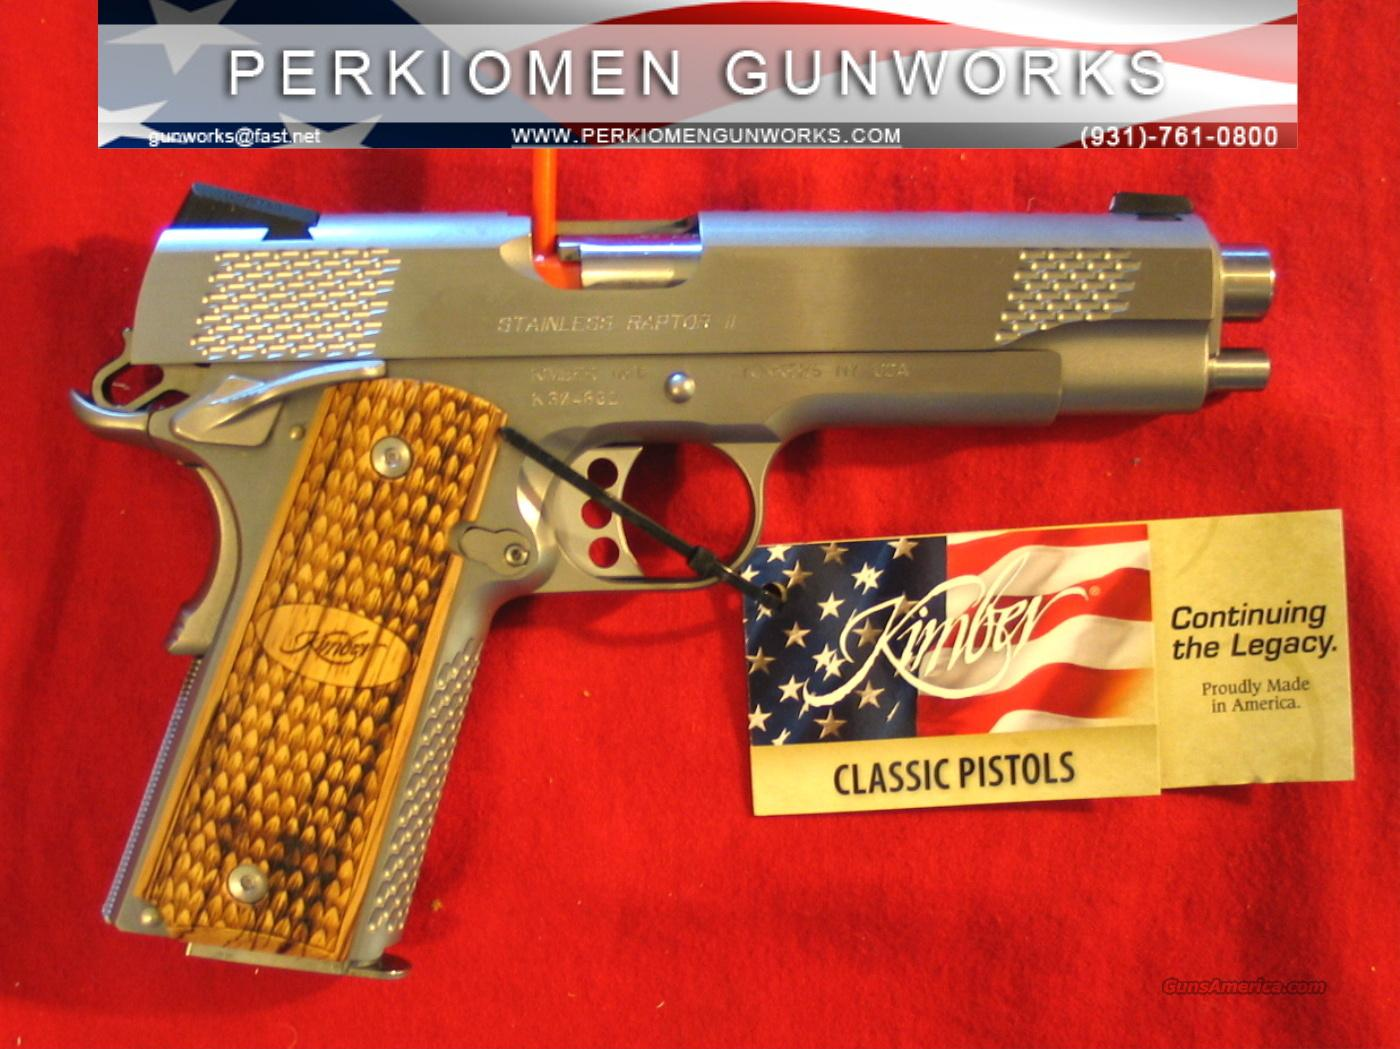 Stainless Raptor 45acp, 5-inch - New in Box.  Guns > Pistols > Kimber of America Pistols